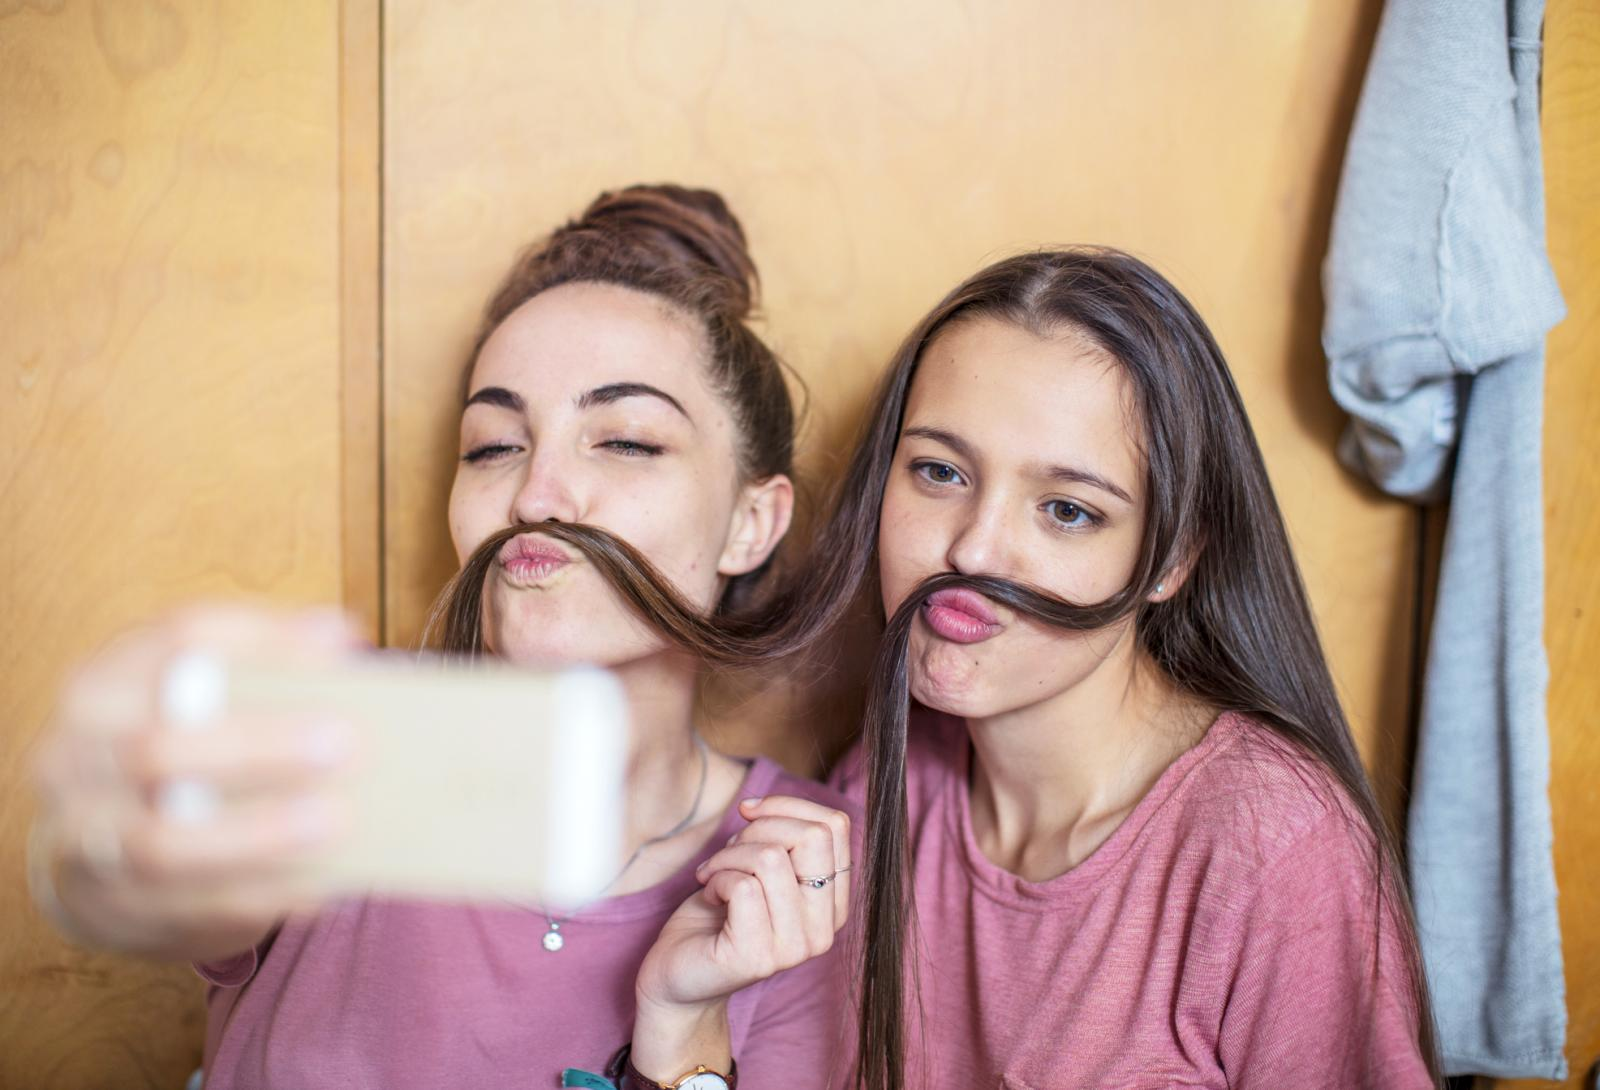 Playful happy teenage girls taking a selfie